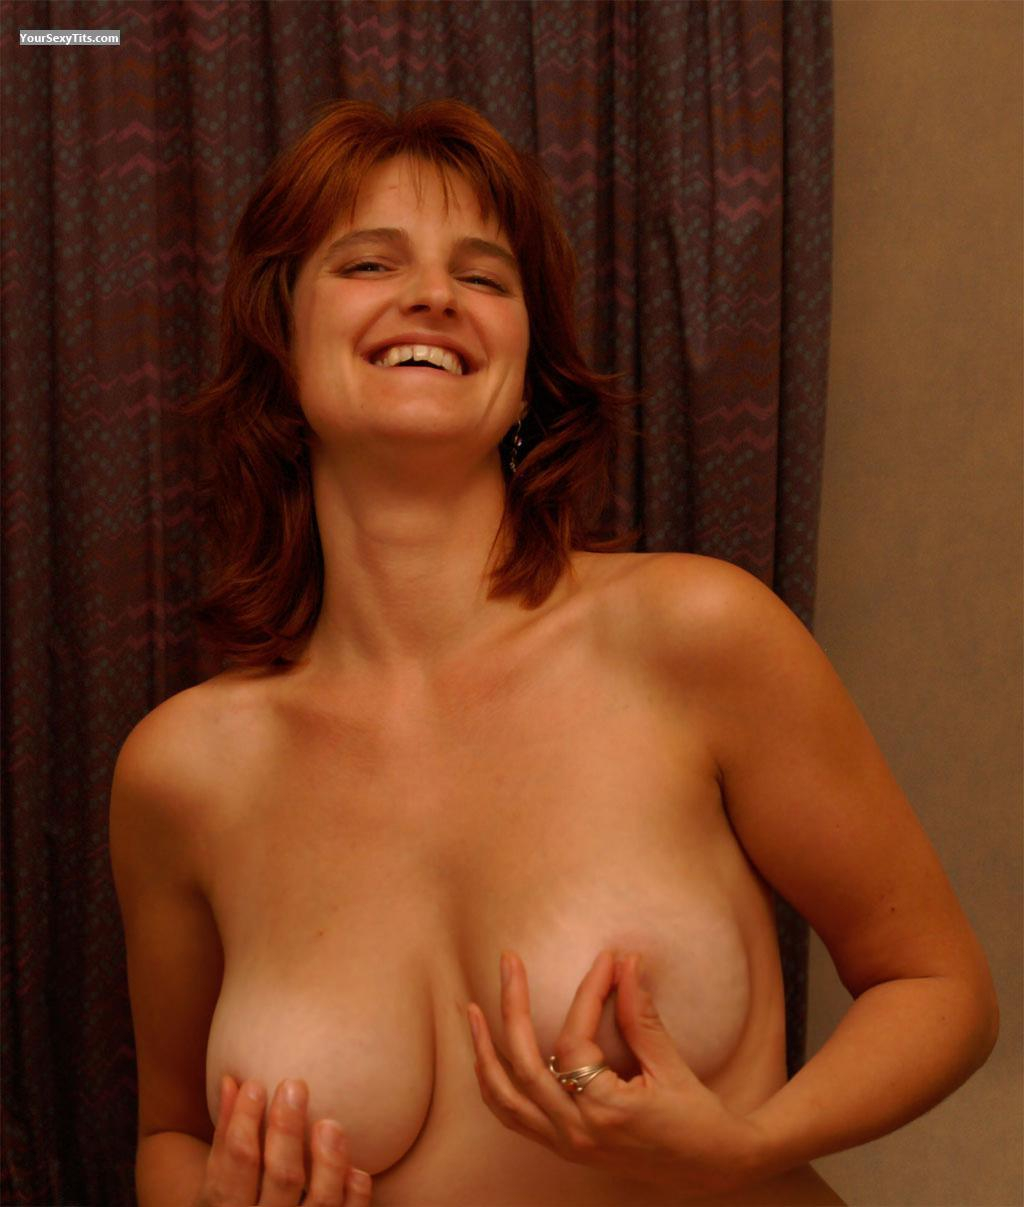 Tit Flash: Big Tits - Topless Hottie from Belgium